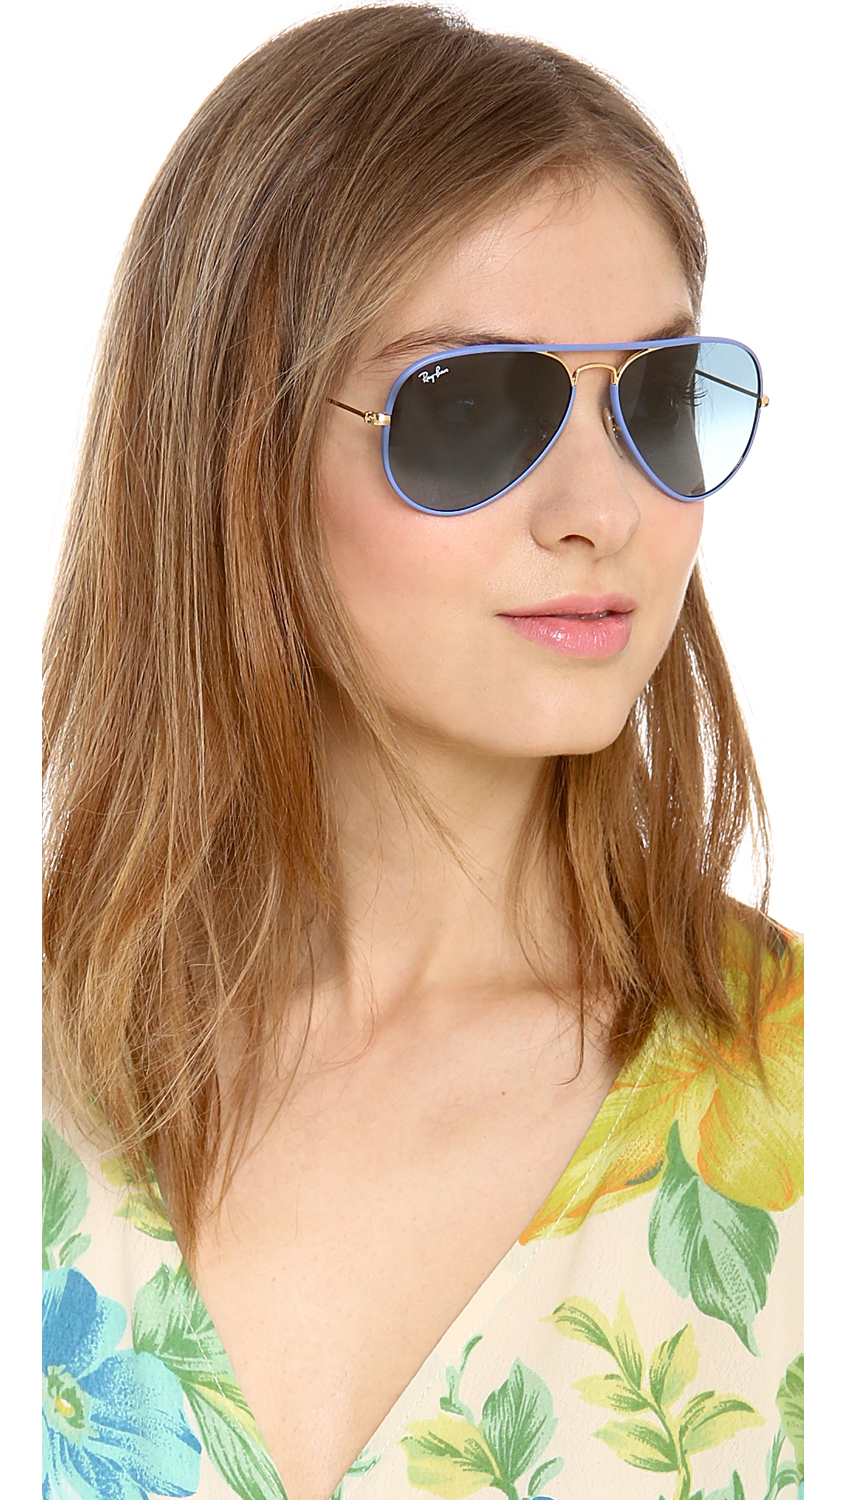 Aviator sunglasses for women - Ray Ban Sunglasses Women Aviator Blue Ray Ban Sunglasses Women Aviator Blue